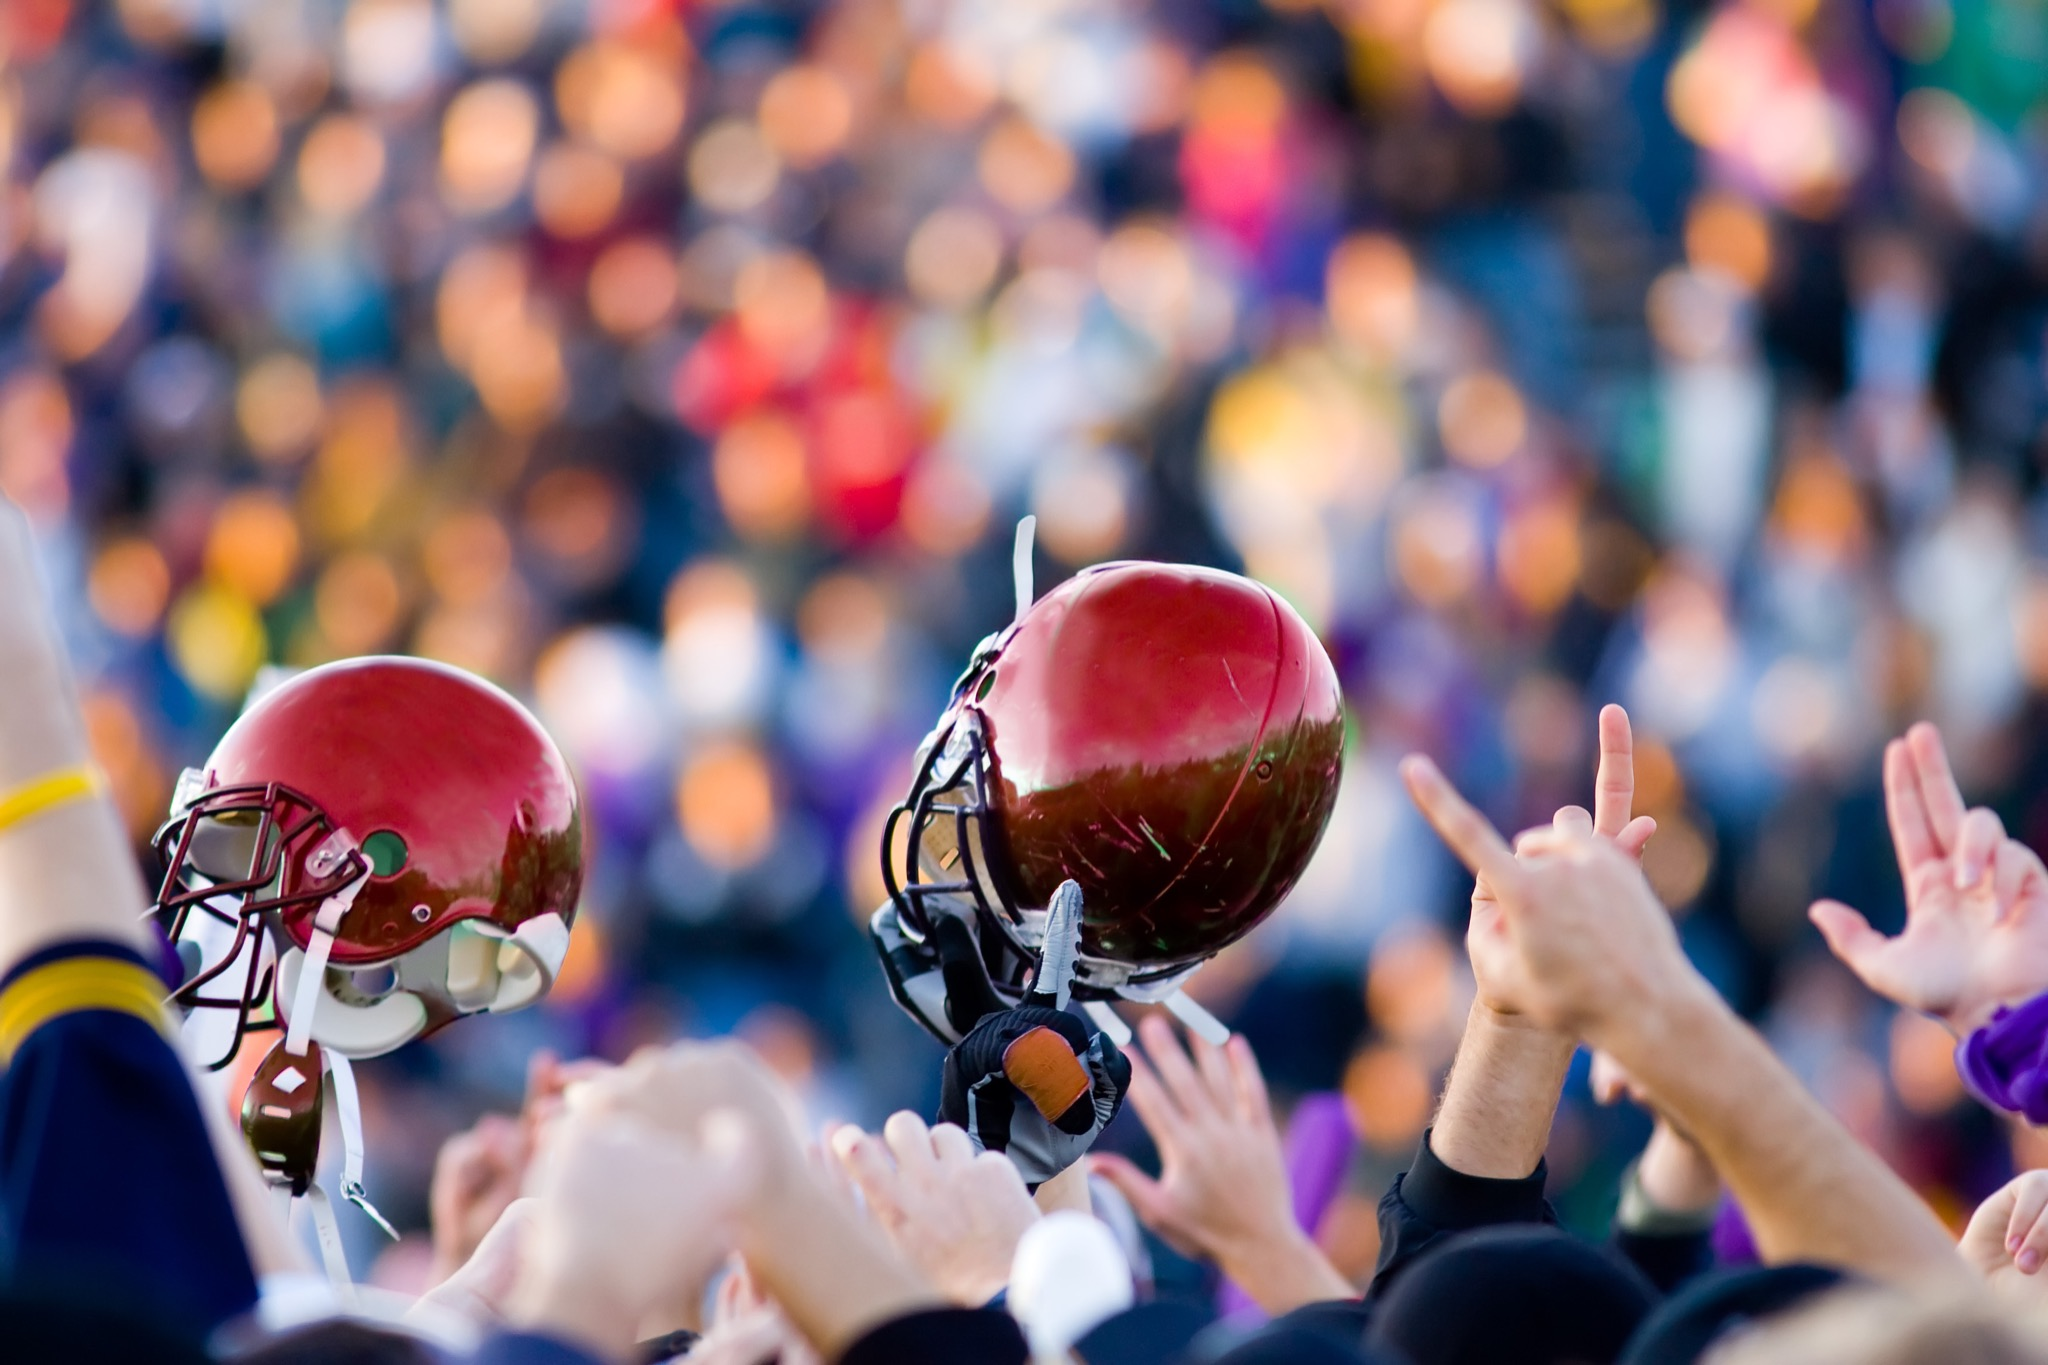 College Football Bowl Schedule: Games On Today 12/31